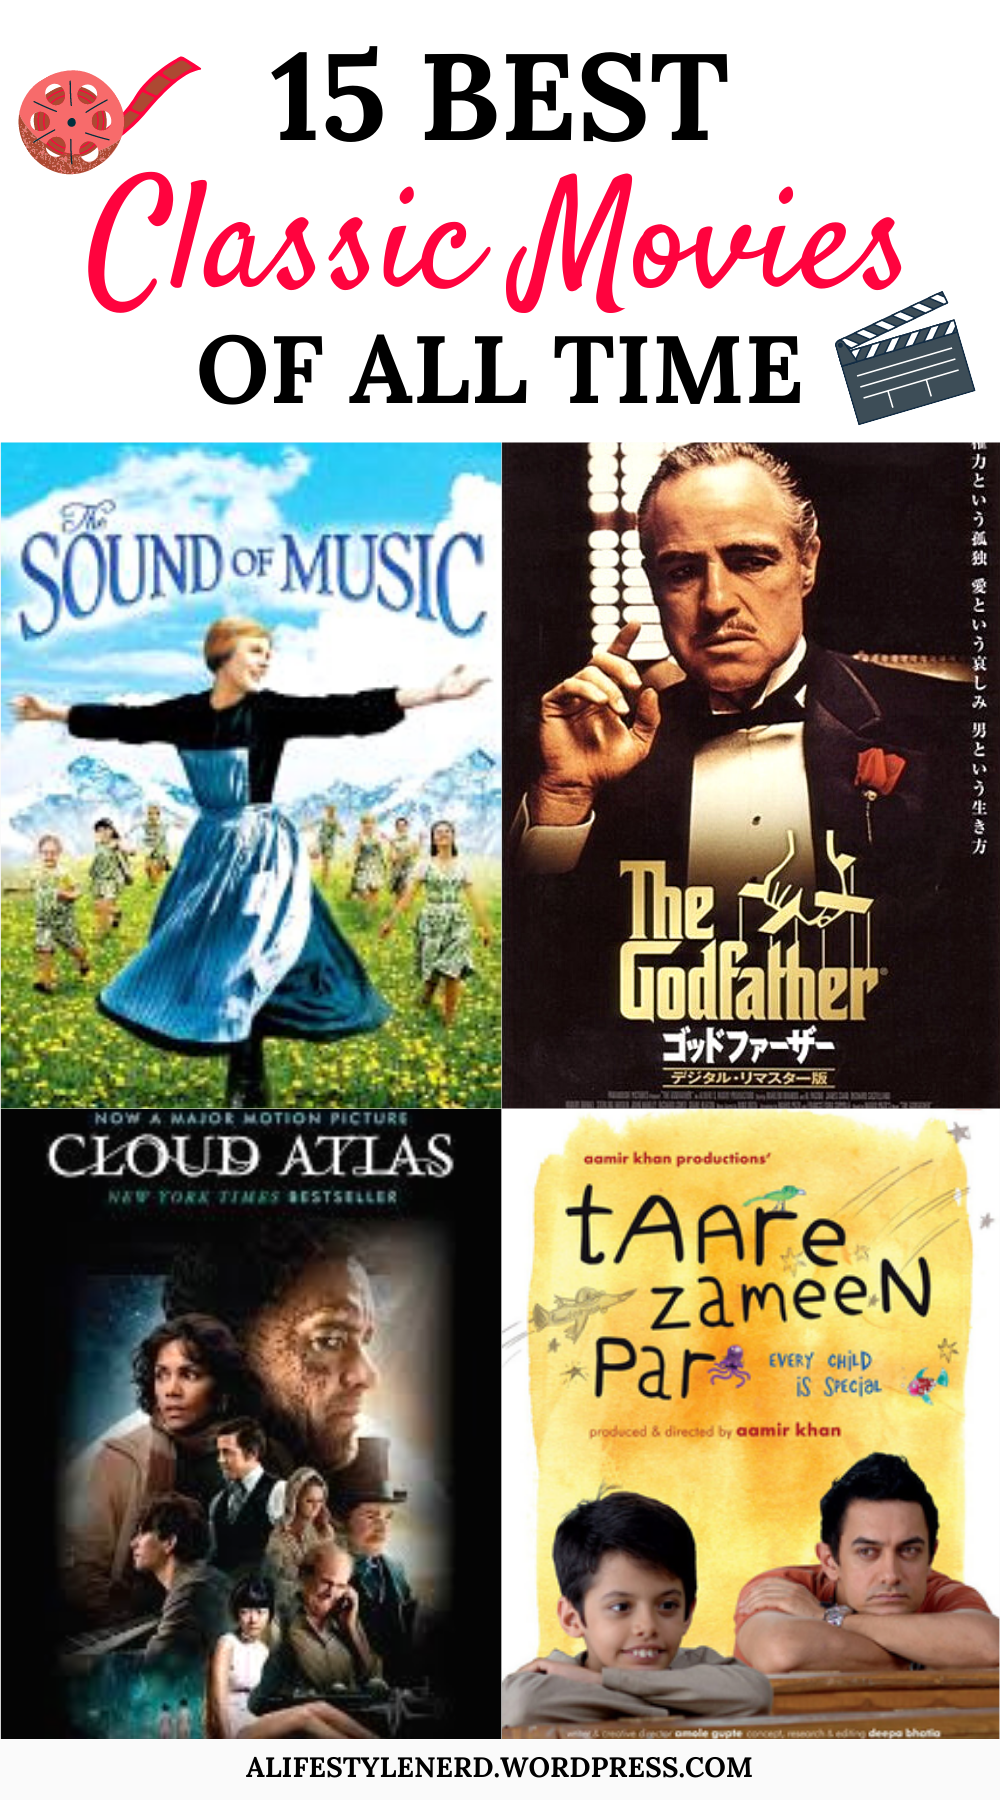 15 Best Classic Movies To Watch On Netflix Best Classic Movies Top Disney Movies Top Movies To Watch